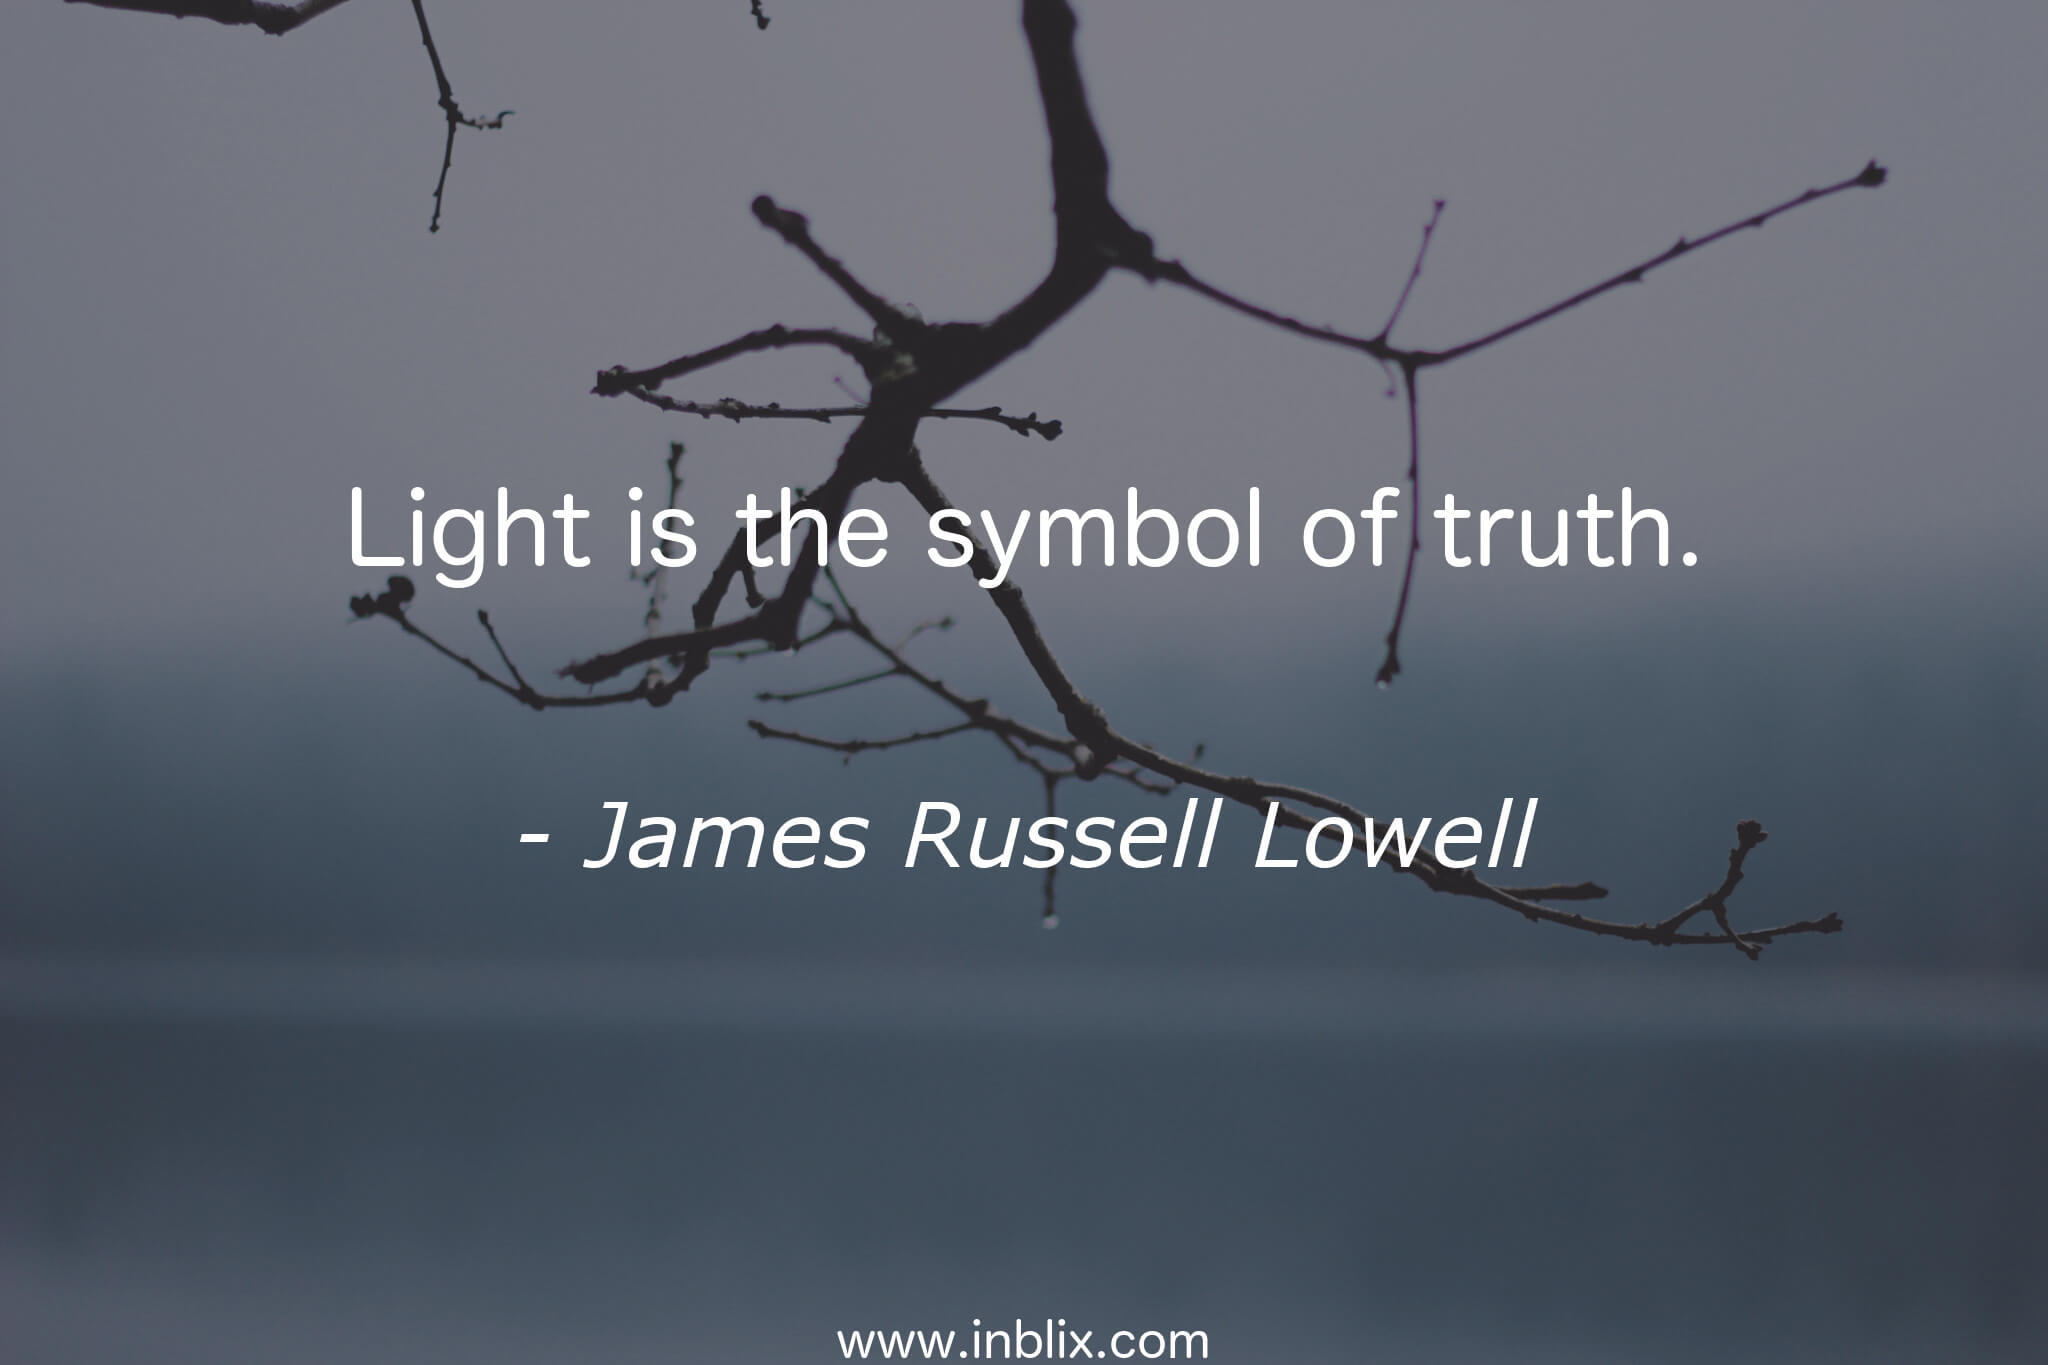 Light is the symbol of truth.